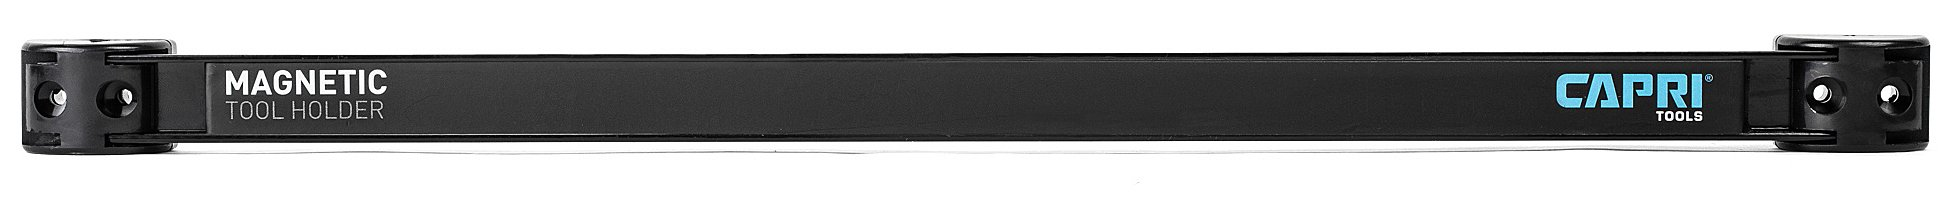 Capri Tools CP40015-2PK Magnetic Bar Holder Tool (Pack of 2), 18'', Black